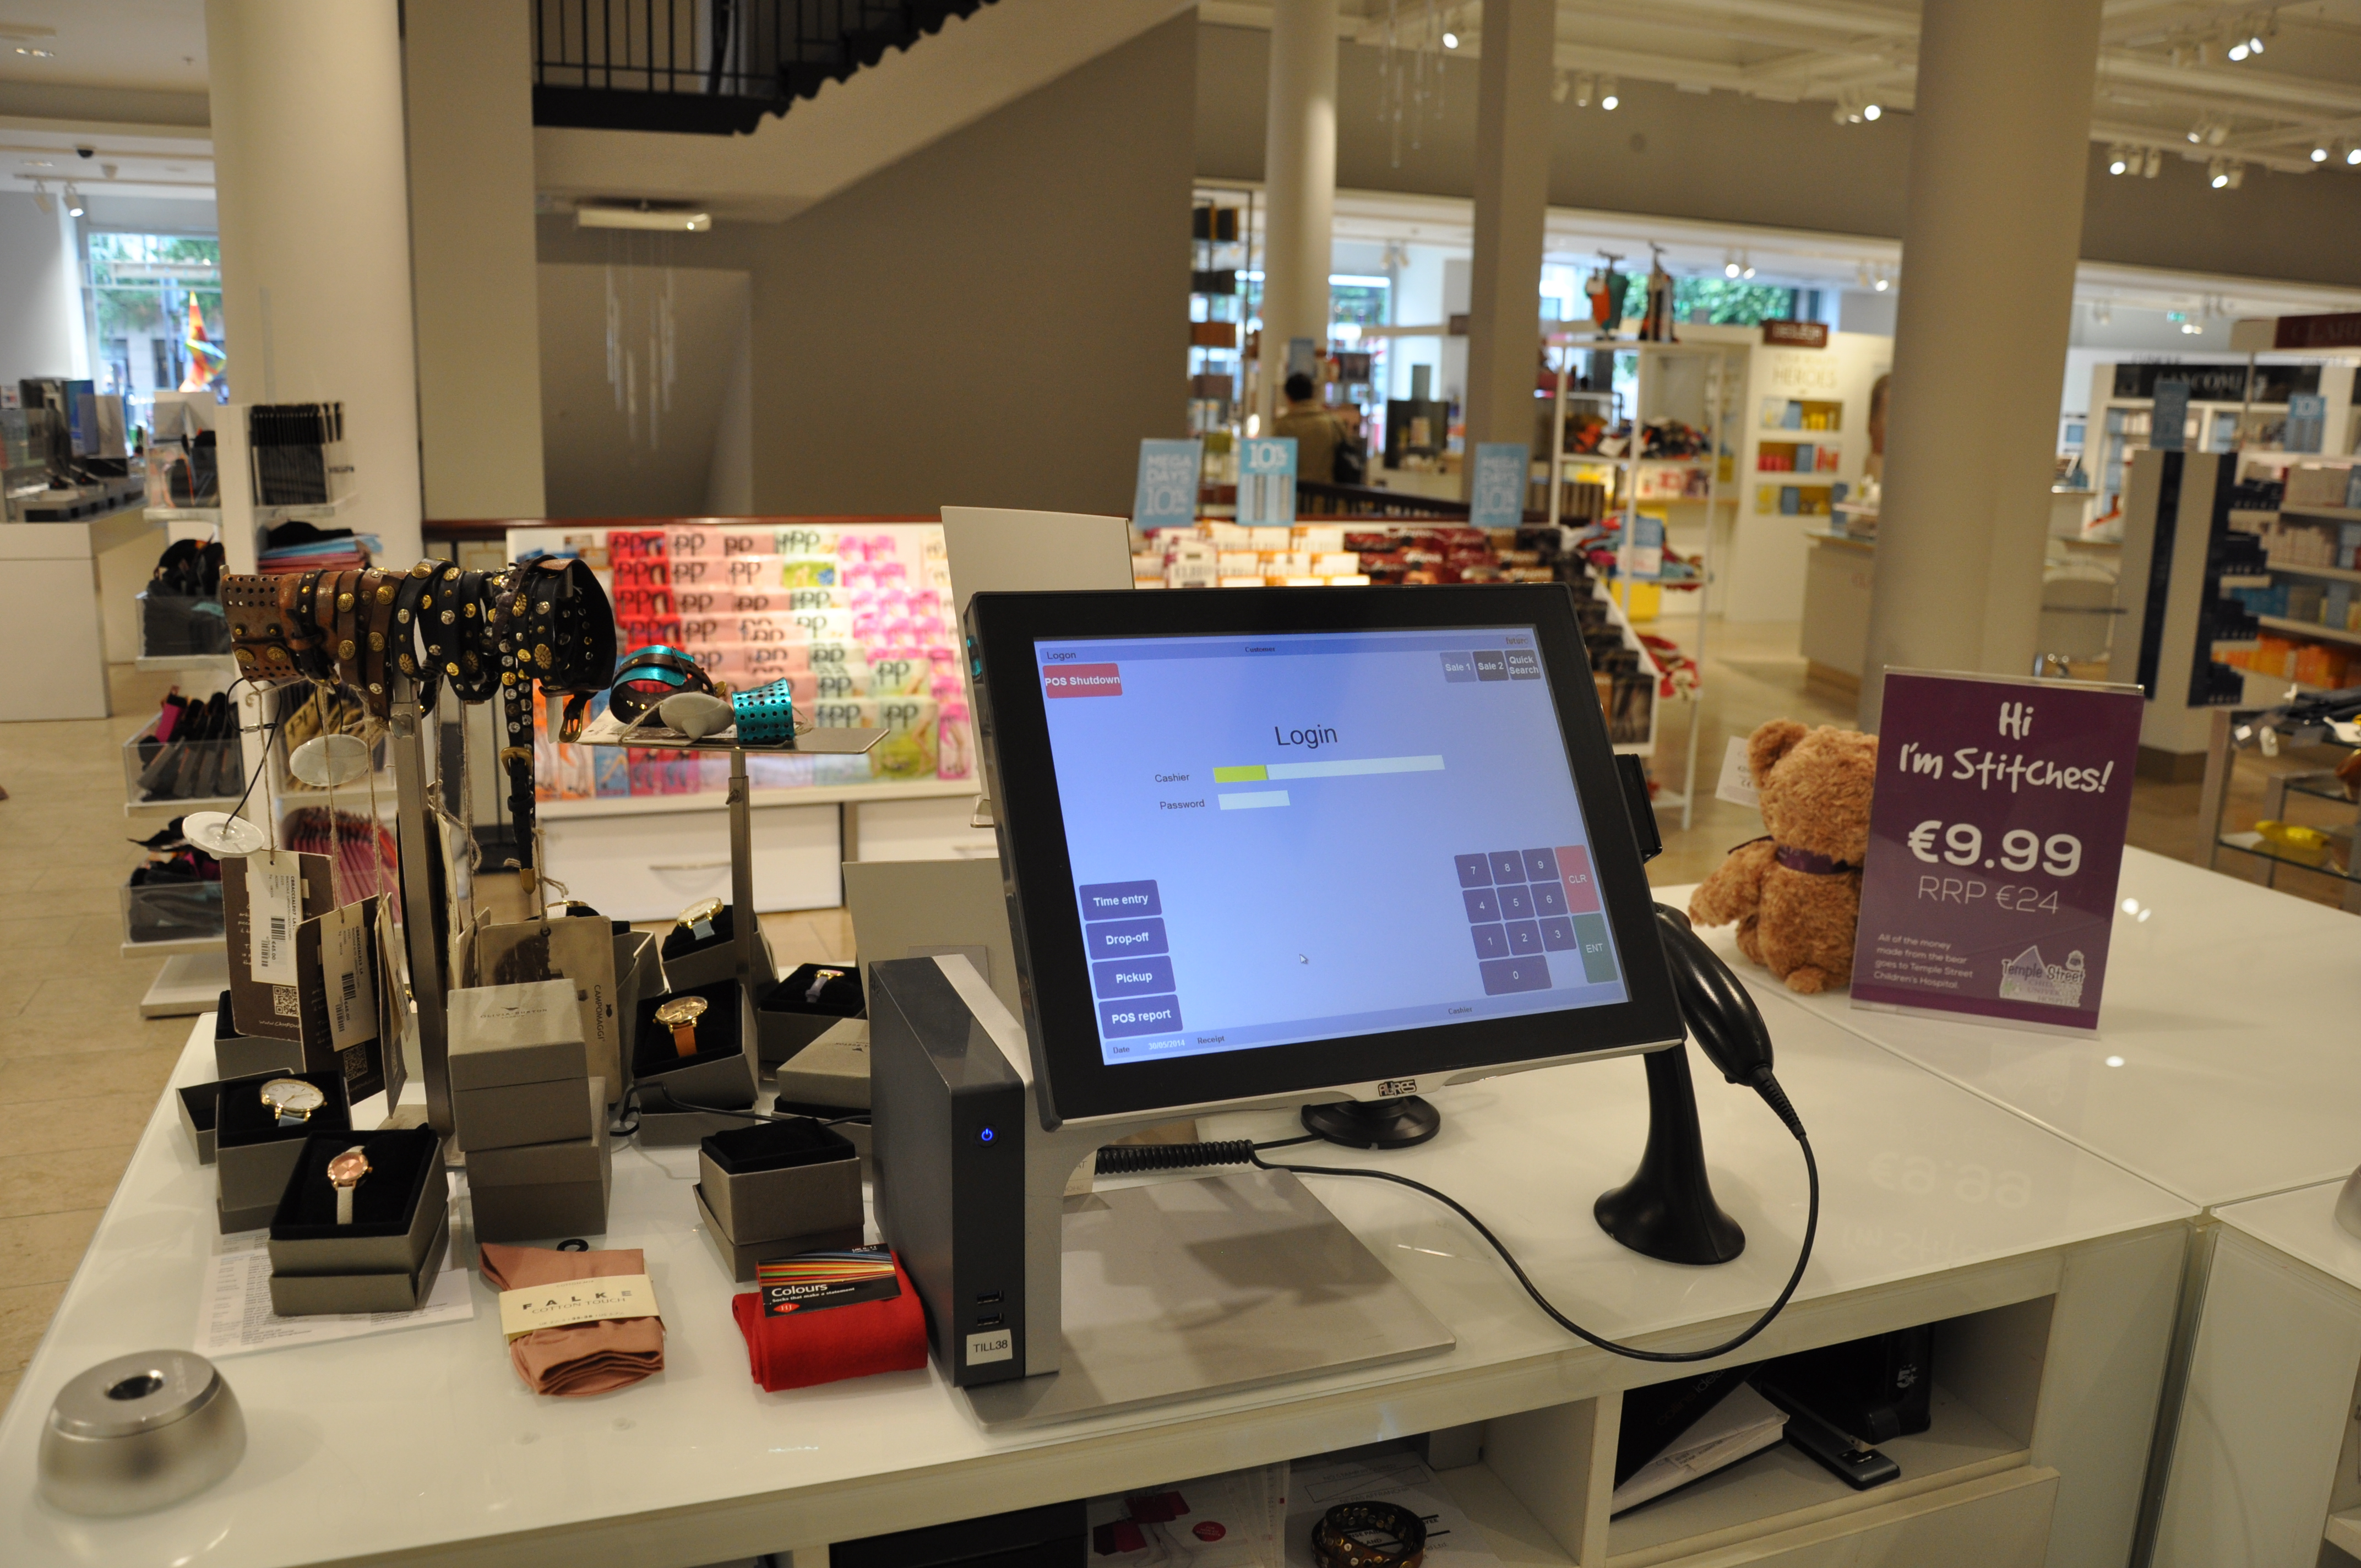 AURES' sangos using Futura's EPoS solution in use in Clerys